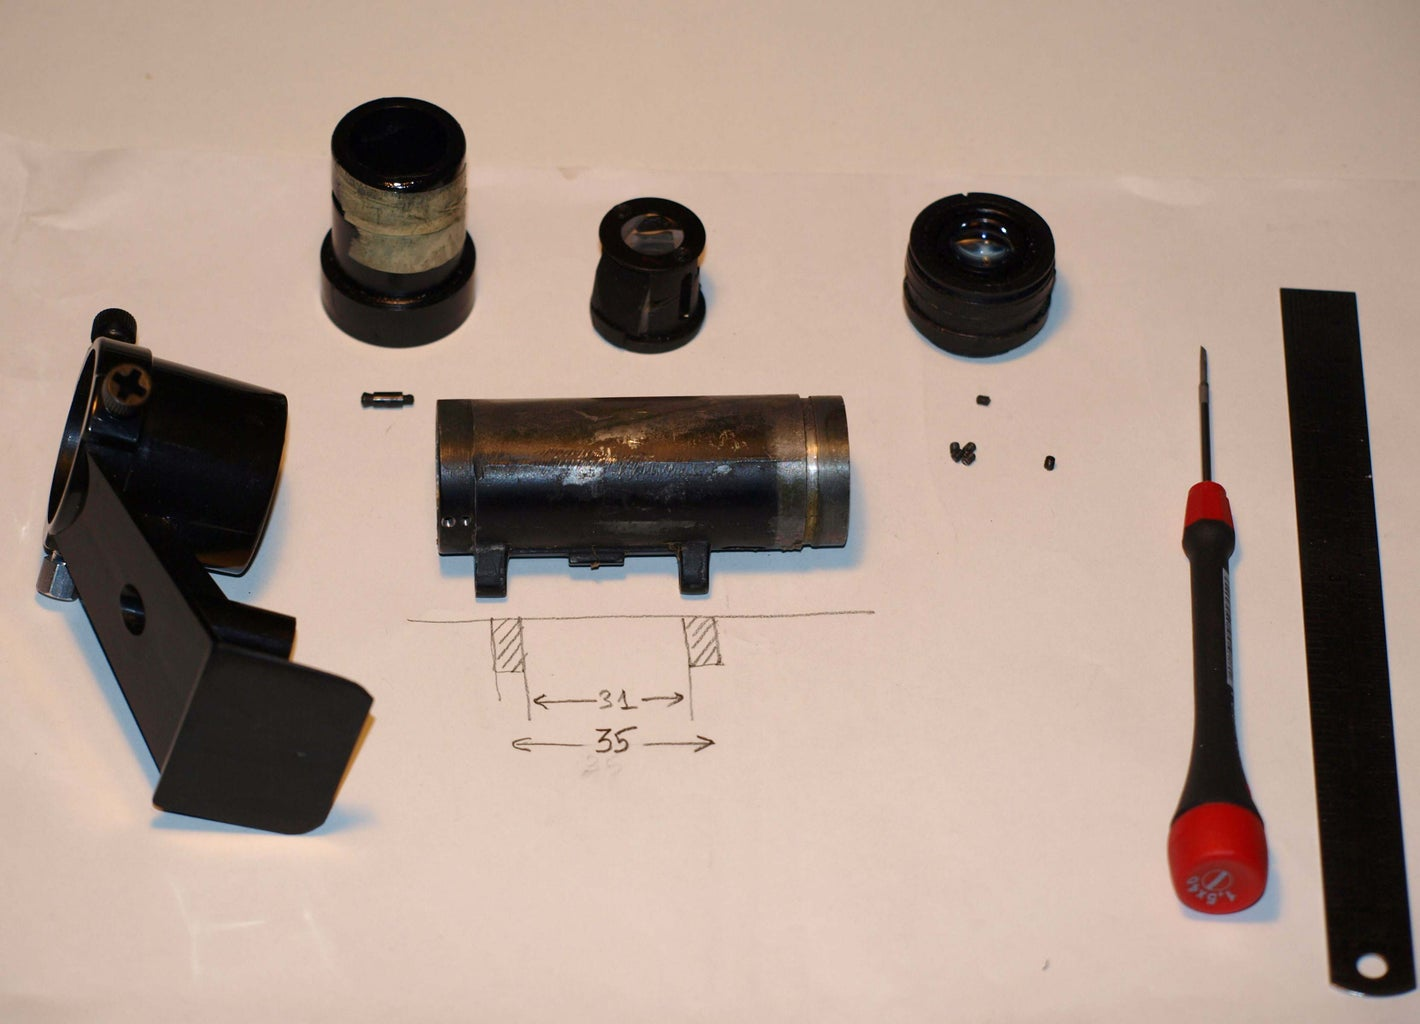 (2) Make a Finderscope Yourself